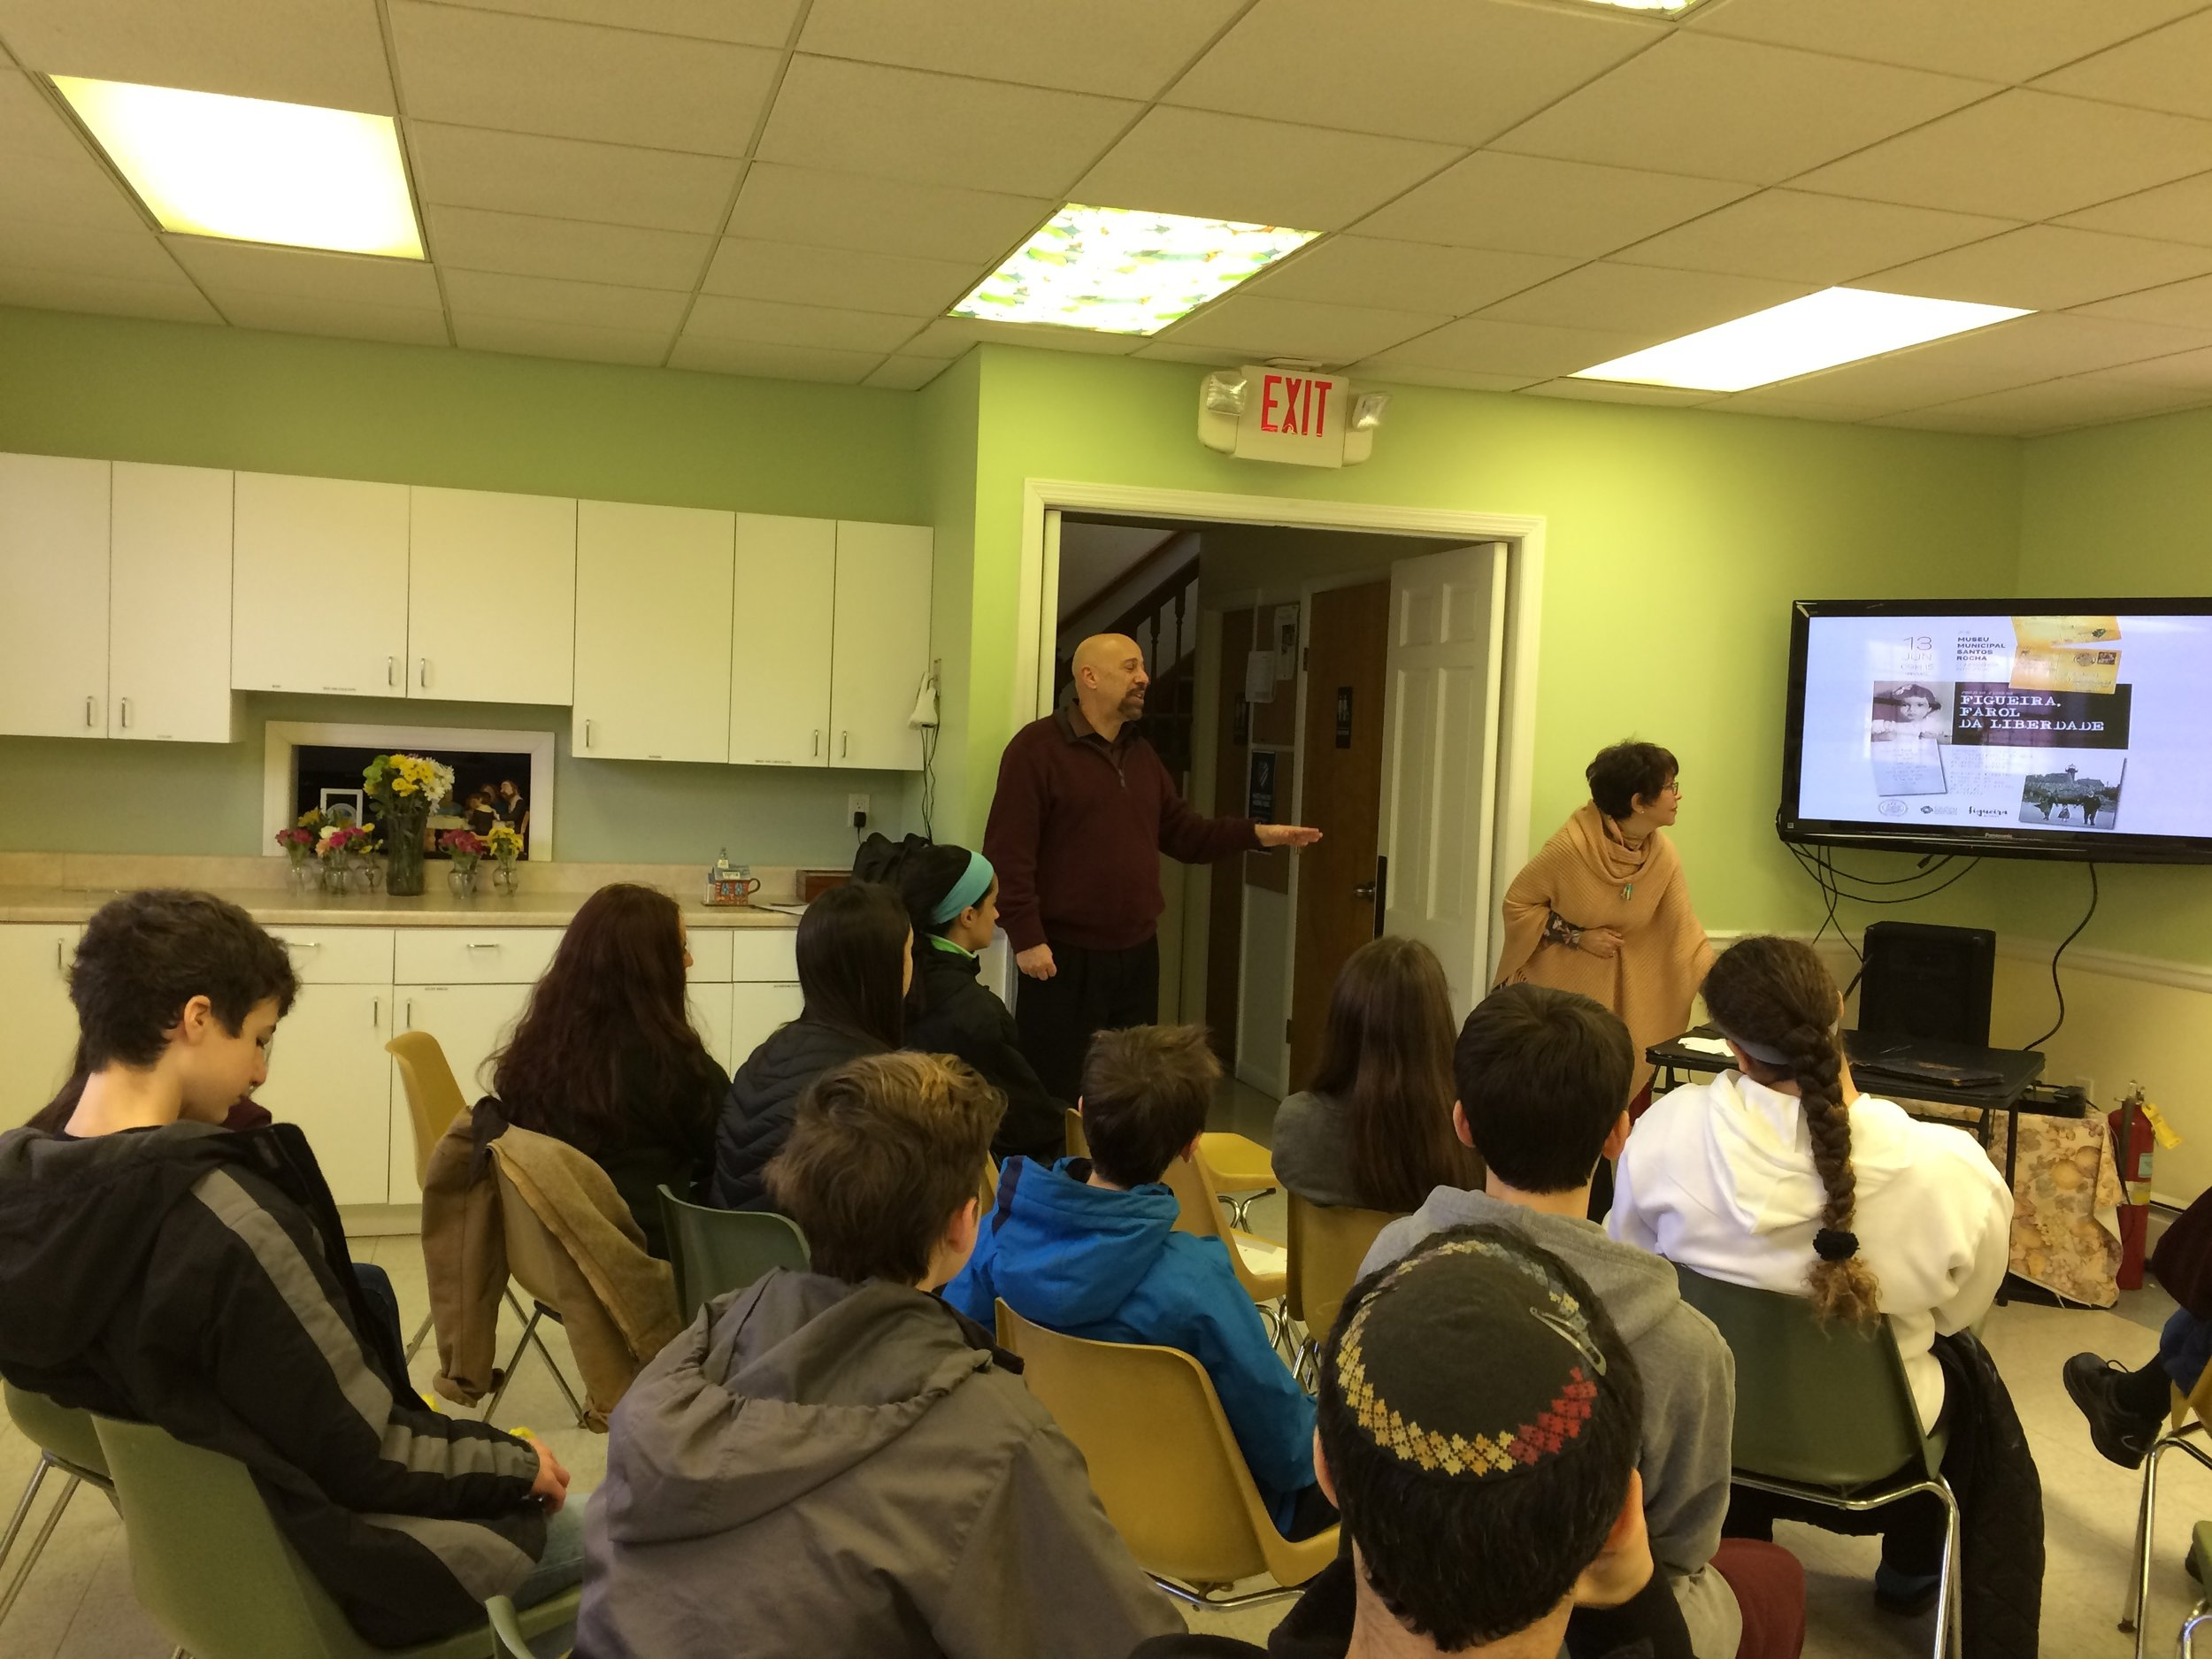 Joan's presentation of   My Sister's Eyes   , the story of how her family was rescued by Aristides de Sousa Mendes, to the Confirmation class of  Congregation Adas Emuno  was one such occaision.  Rabbi Barry Schwartz, the religious leader of the congregation, is a good teacher. This was evident by the thoughtful follow-up questions he posed to Joan and the class.   Rabbi Schwartz  is also a prolific writer as well as director of the Jewish Publication Society in Philadelphia, the nation's oldest and best known Jewish publisher. The society has just published Dr. Mordecai Paldiel's latest book,  Saving One's Own  , which recounts the stories of Jewish Resucers during the Holocaust.   Thank you Rabbi for helping to share the story of   My Sister's Eyes